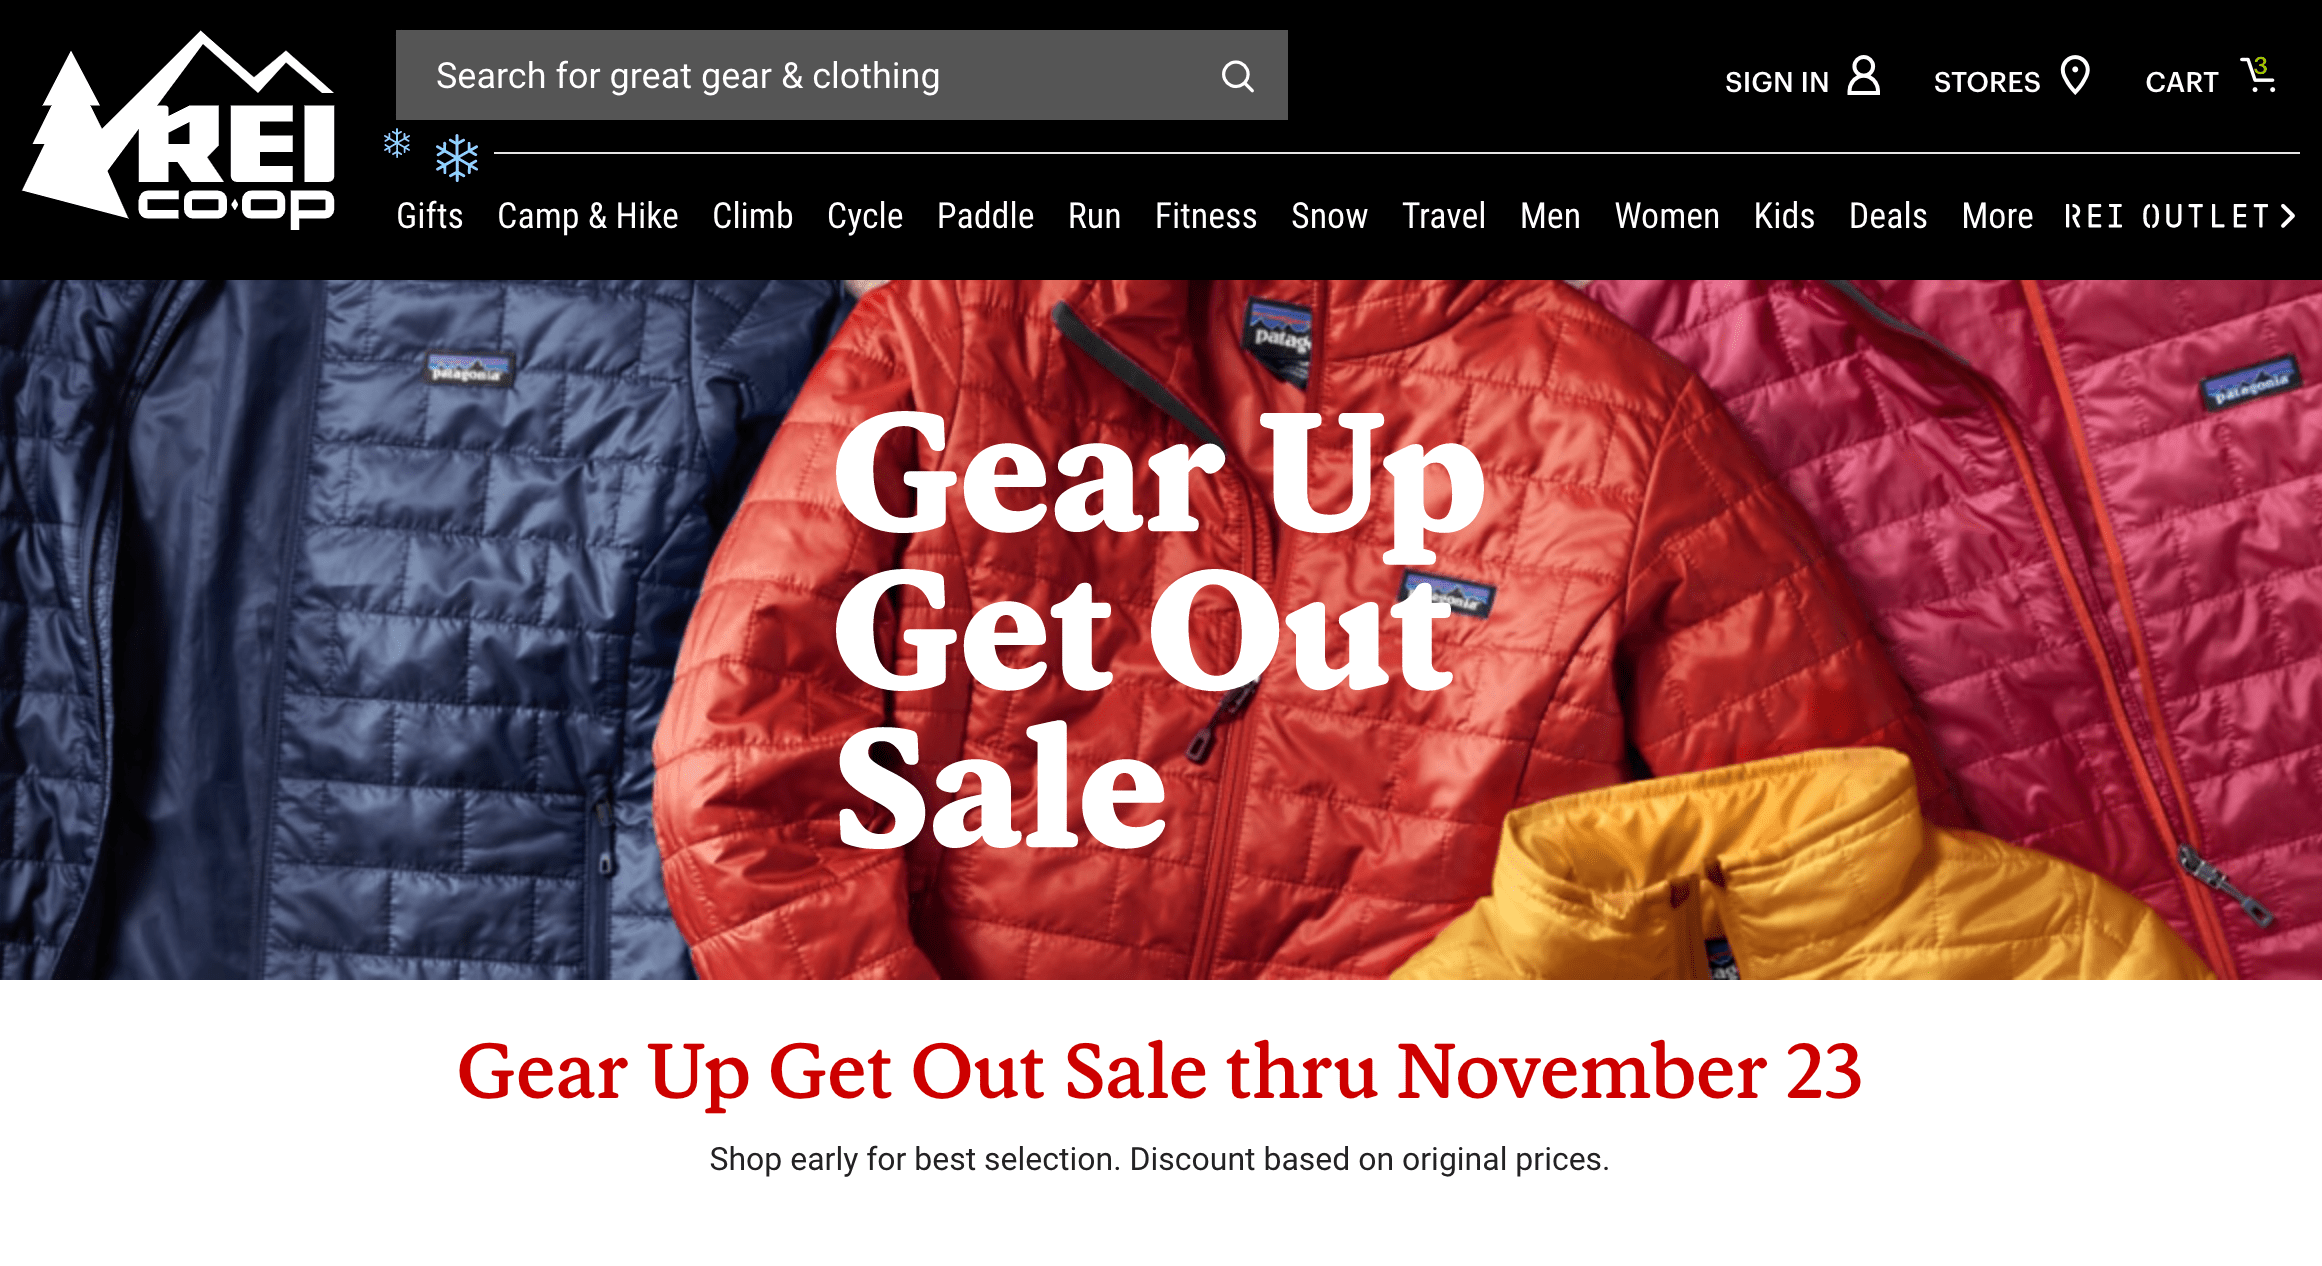 My Top 10 Deals from REI's Gear Up Get Out Sale